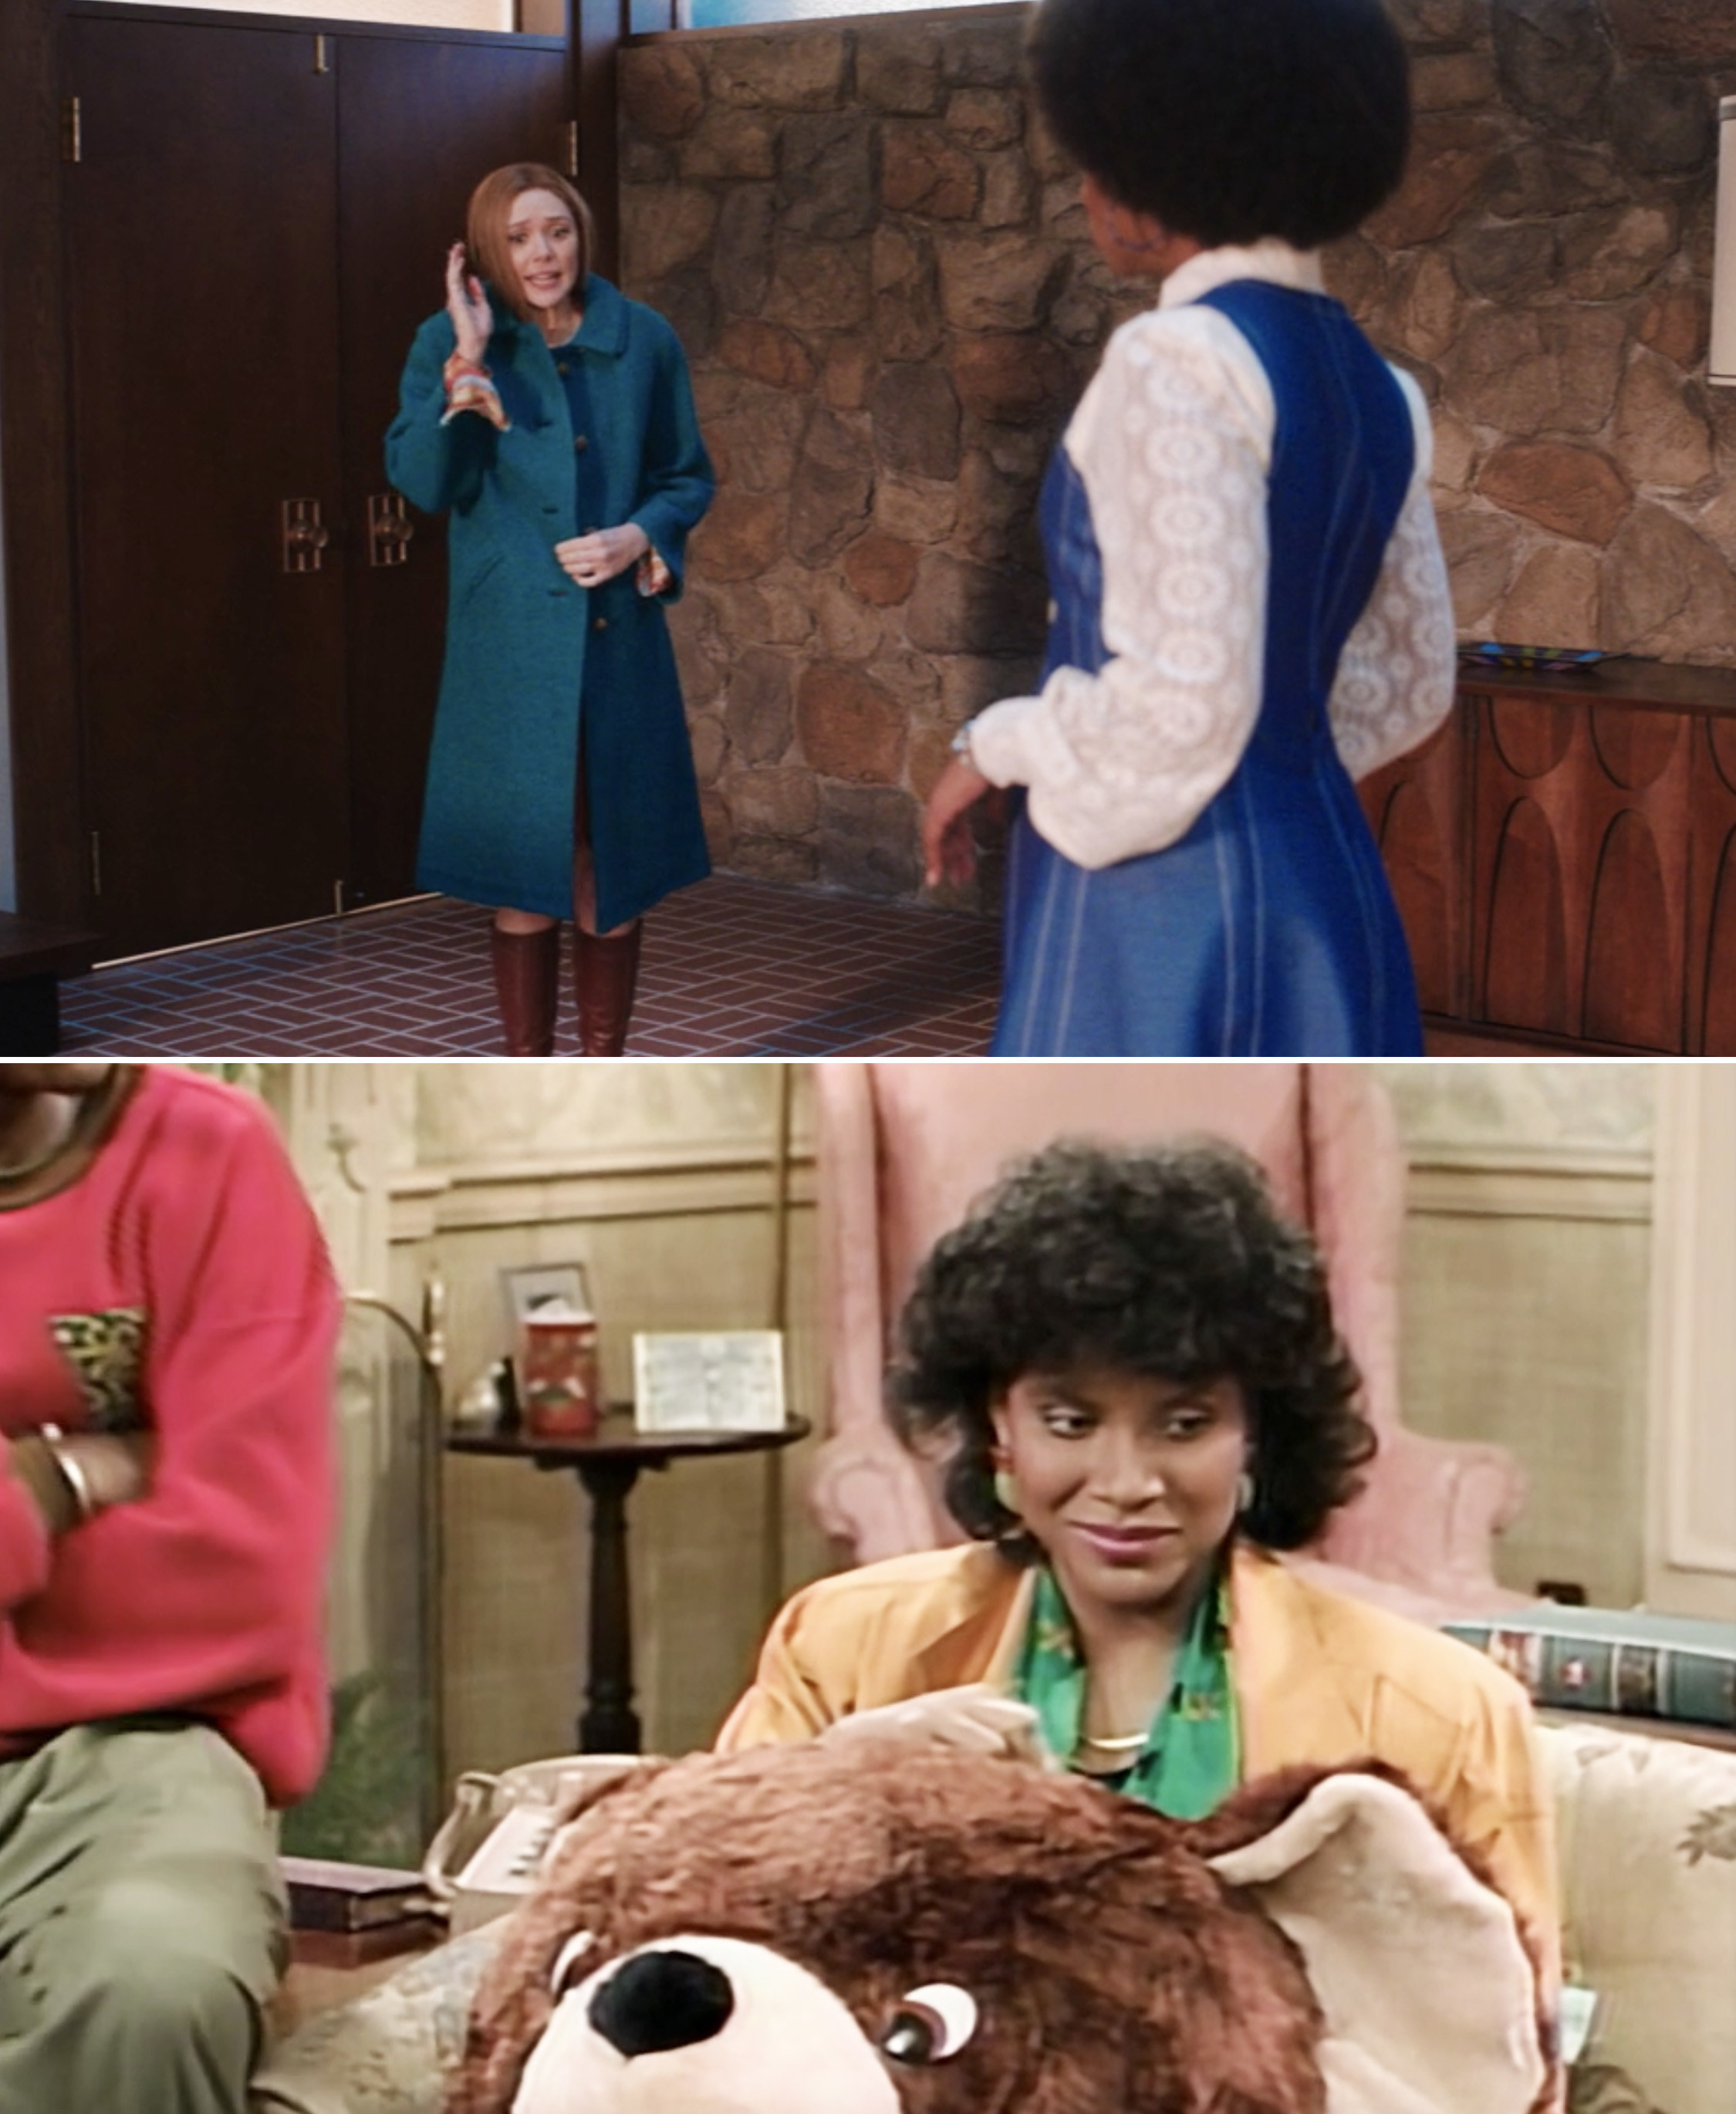 Wanda talking to Geraldine while wearing a large coat vs. Clair Huxtable sitting behind a giant teddy bear